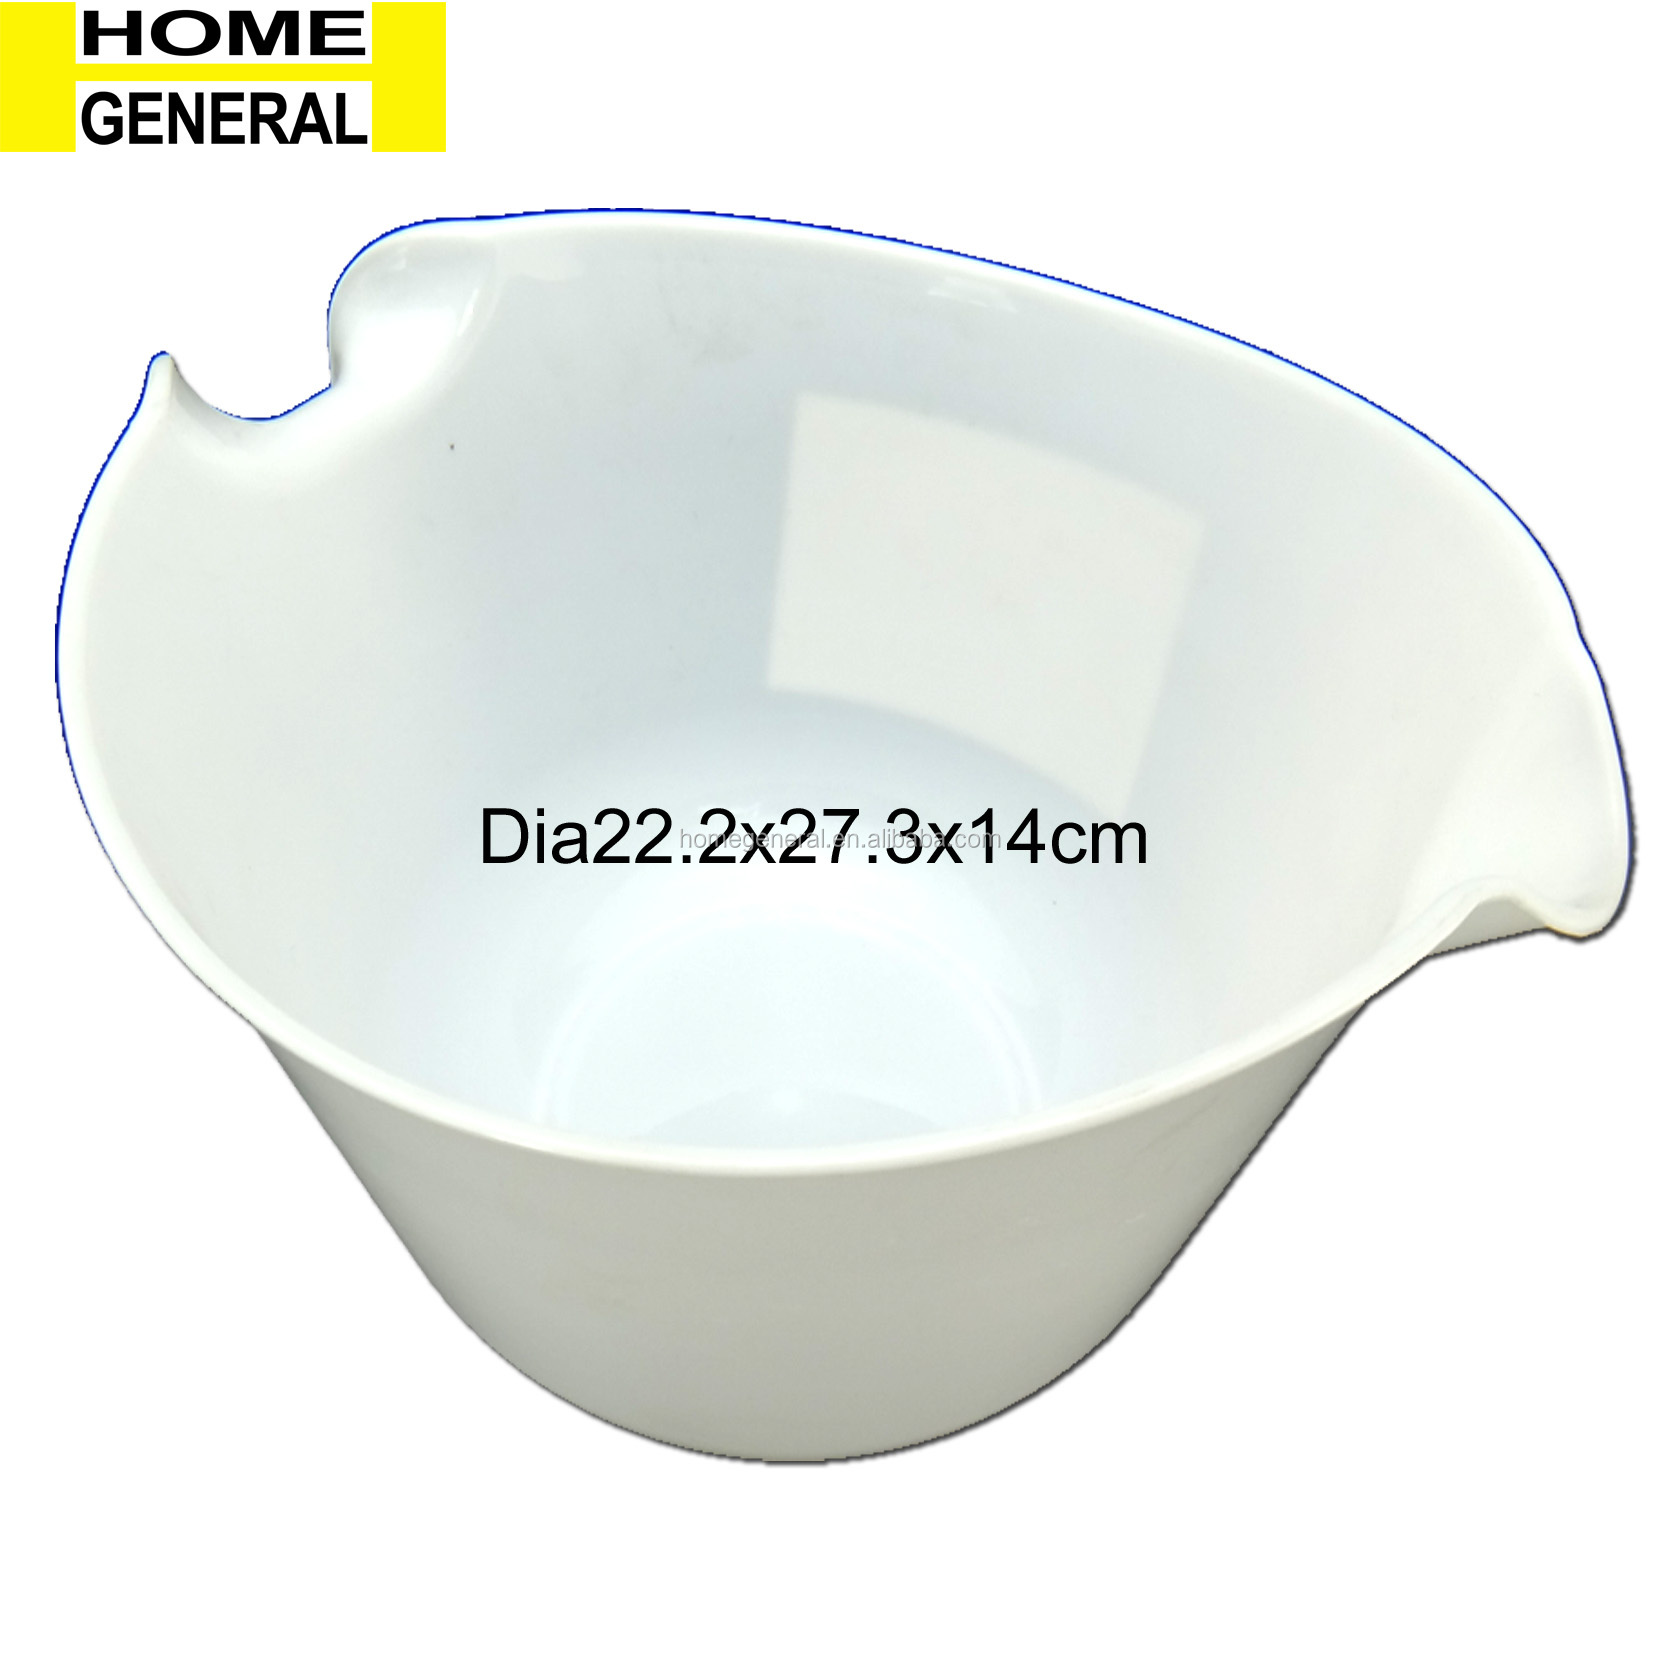 KITCHEN GENERAL, MIXING BOWLS WITH RUBBER GRIP HANDLES EASY POUR SPOUT AND NON SLIP BOTTOM